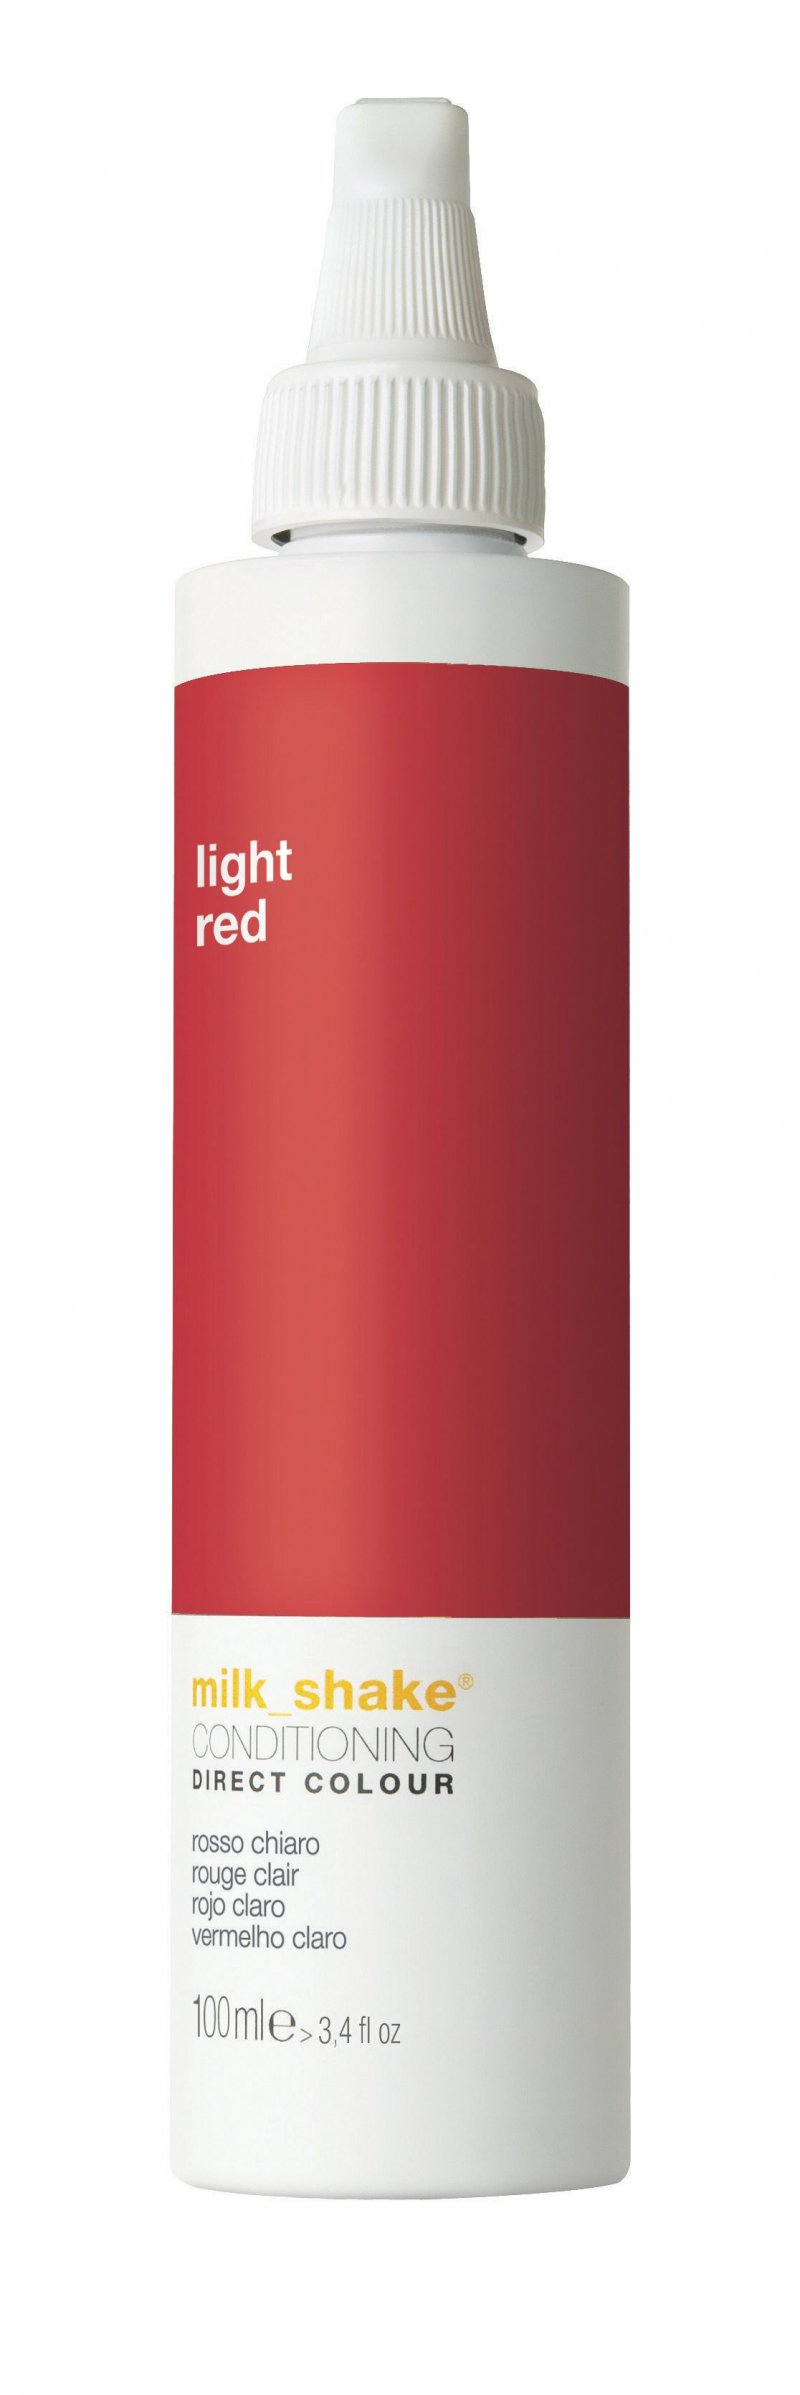 Milk_shake - Direct Color 100 Ml - Light Red